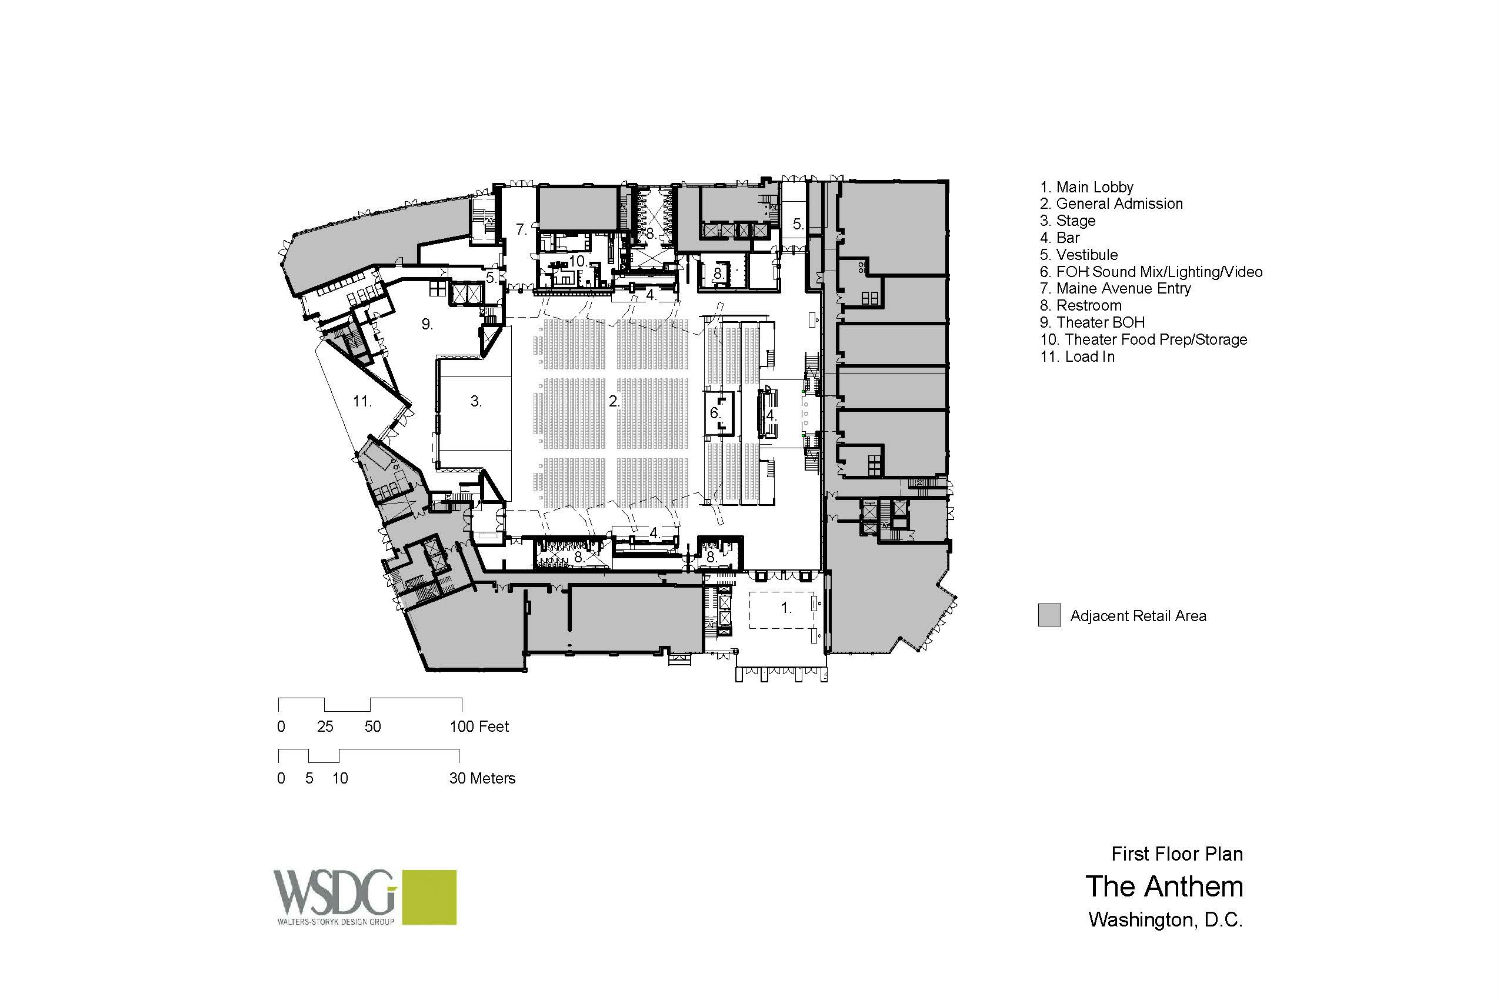 The Anthem, is a game-changing, multi-tiered concert hall created by impresario, Seth Hurwitz. To provide flawless acoustics, the WSDG team was commissioned to take care of the acoustic modeling and simulations. Presentation drawing 3